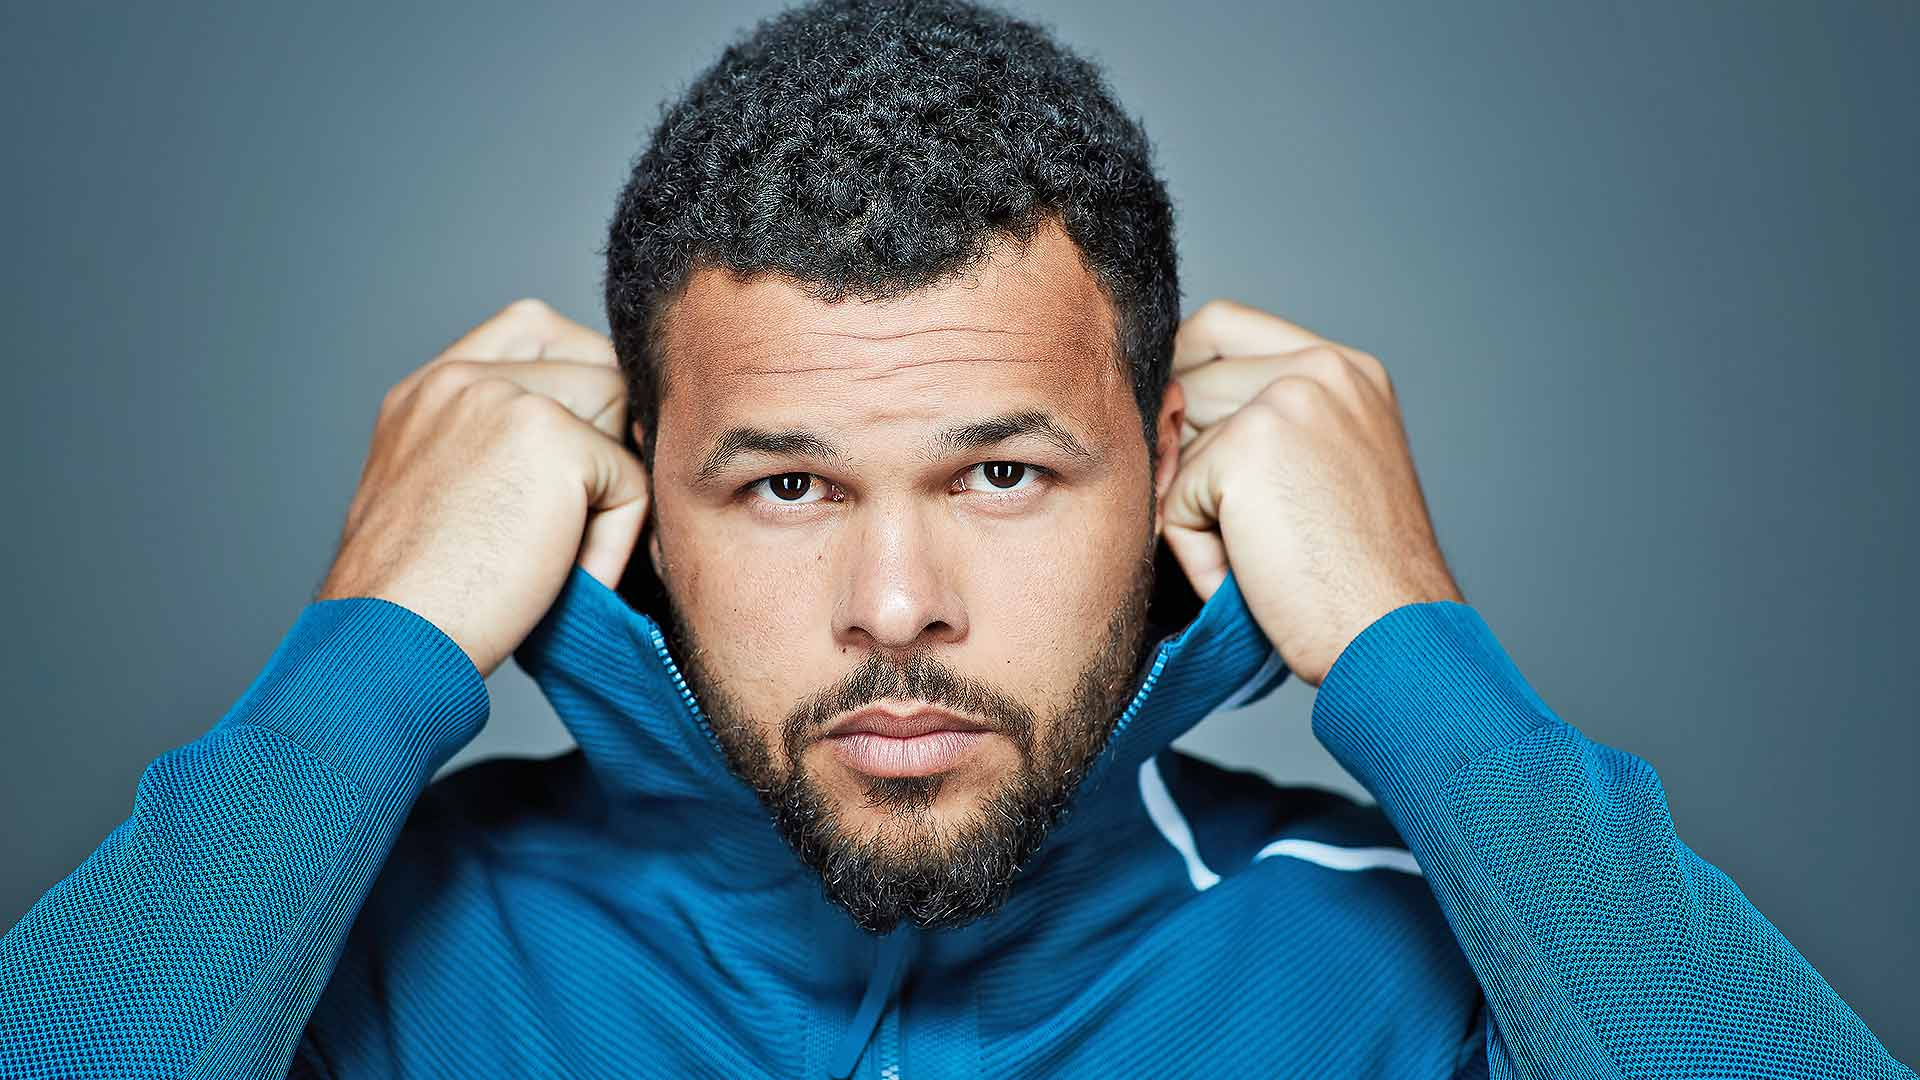 Jo-Wilfried Tsonga took out four Top 10 players en route to the Rogers Cup title in 2014.